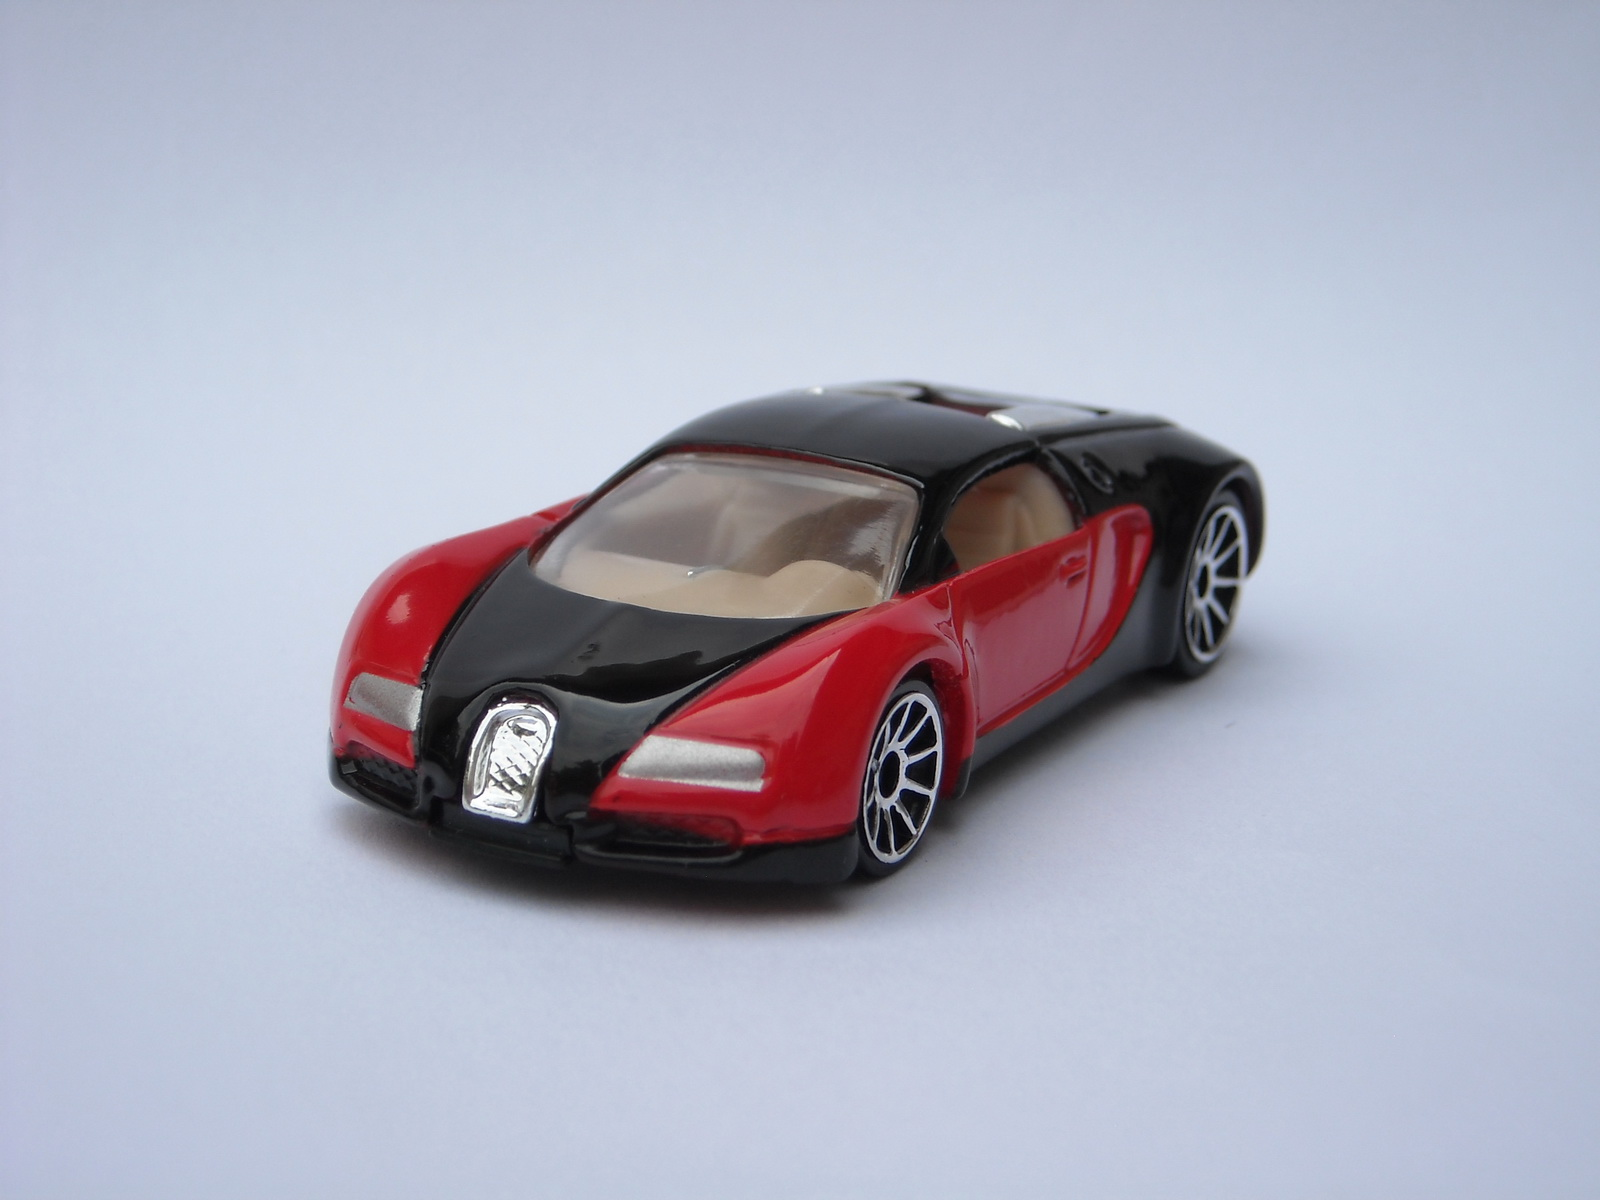 bugatti veyron wheels price these cufflinks are made from. Black Bedroom Furniture Sets. Home Design Ideas